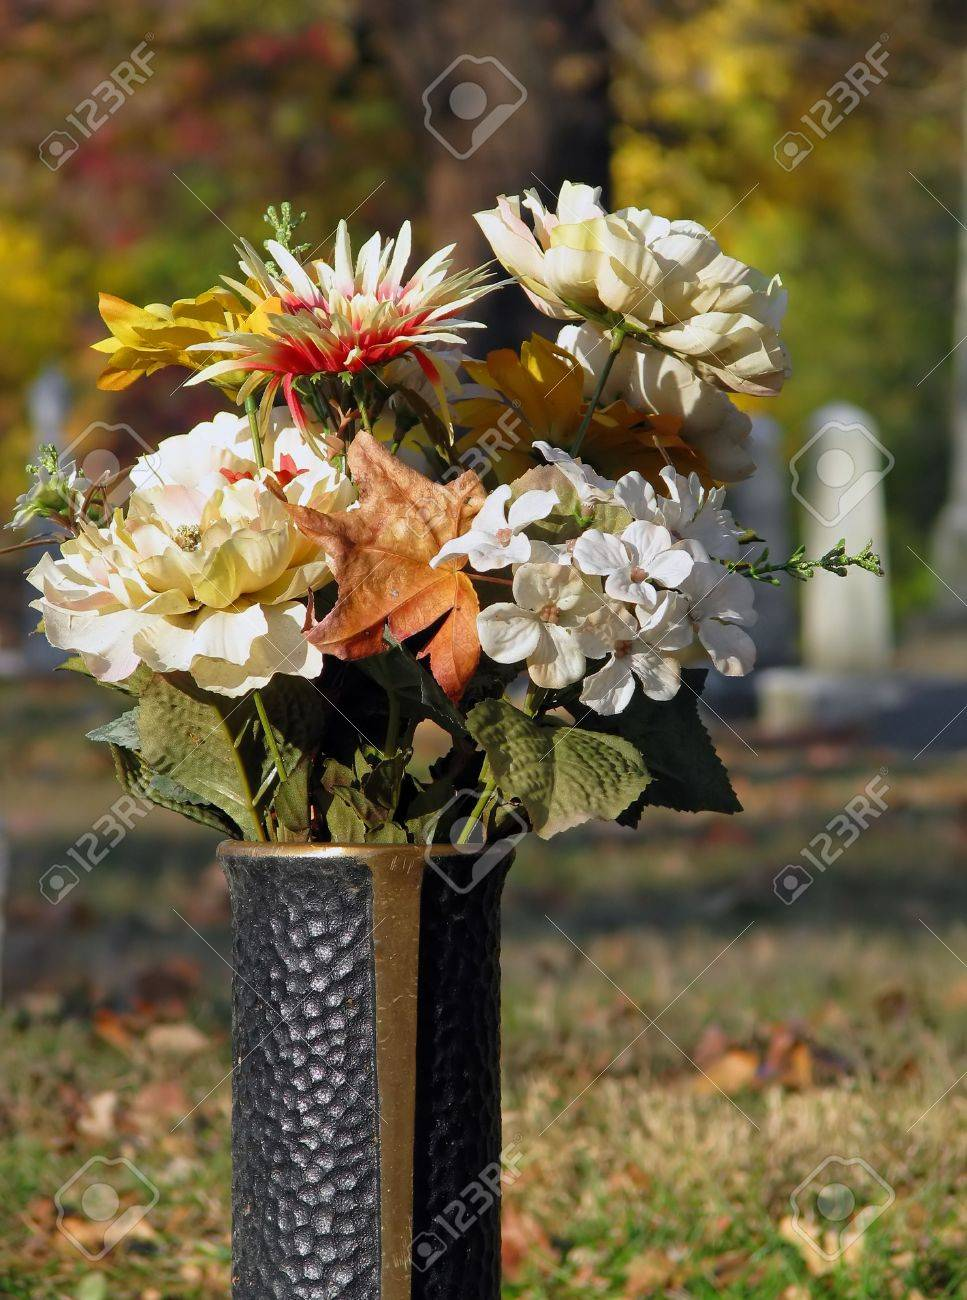 Silk Flowers In Cemetery Grave Vase Autumn Stock Photo Picture And Royalty Free Image Image 3804827